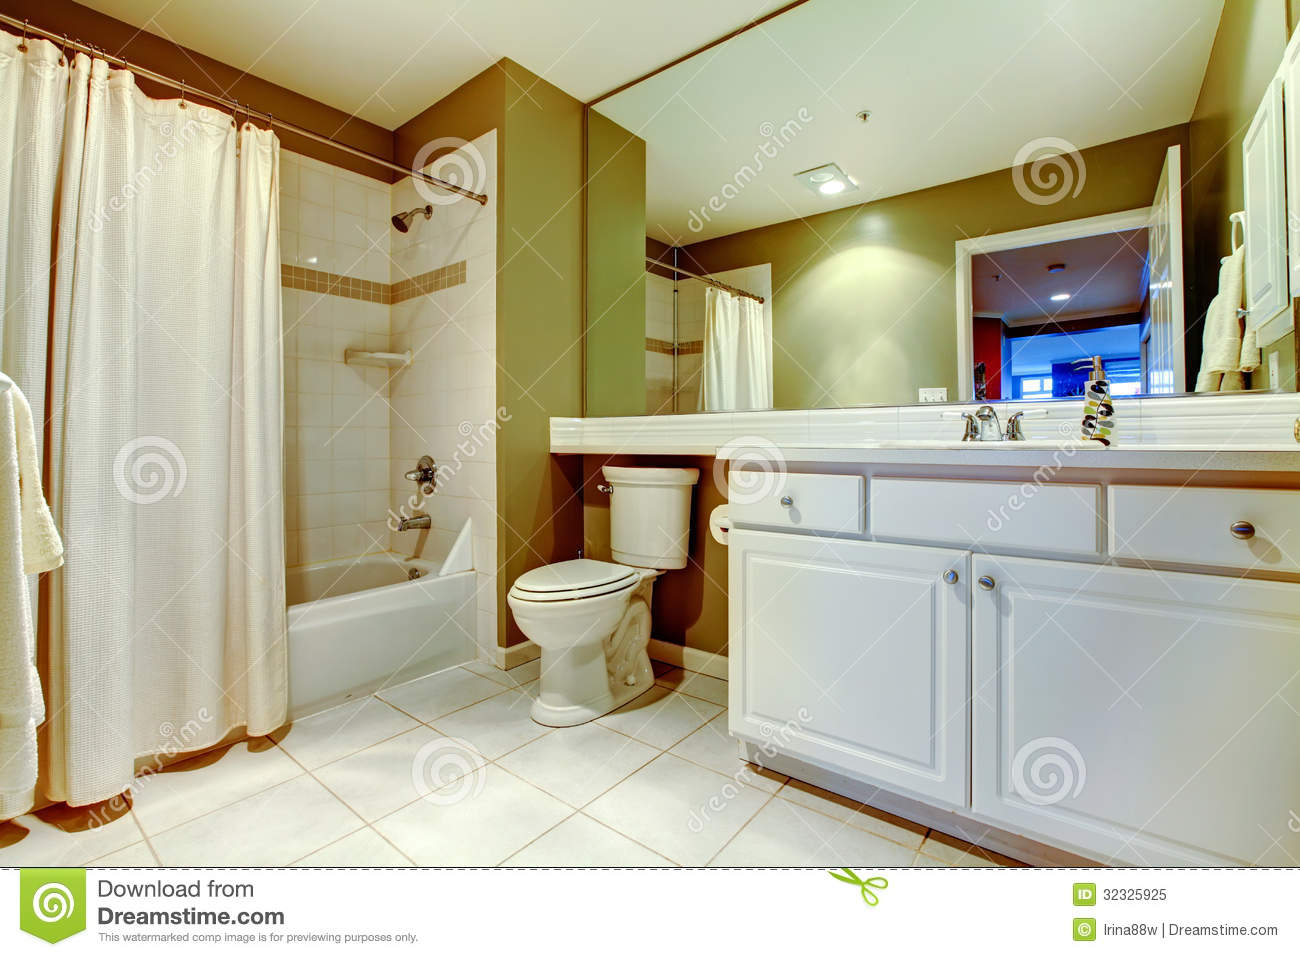 Green and white bathroom with sink and tub with curtain stock image image 32325925 - Image of bath room ...